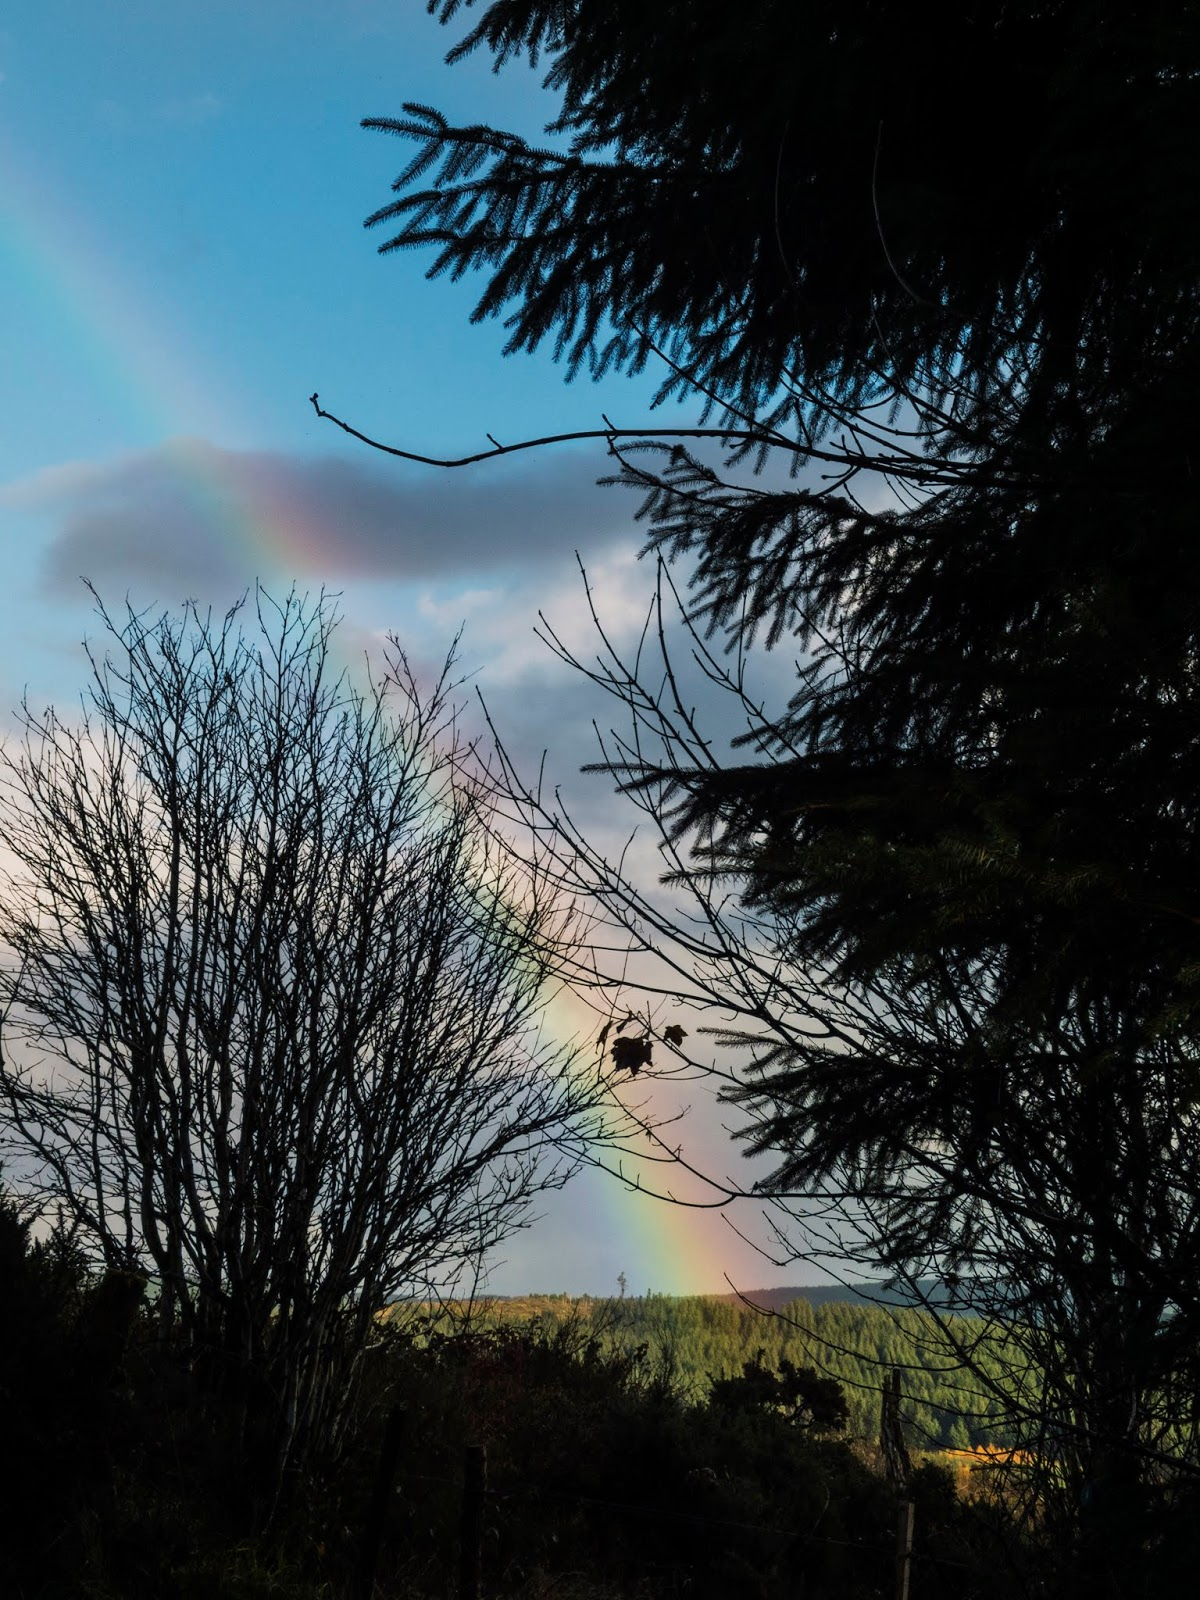 Rainbow over a distant mountain between shaded trees.